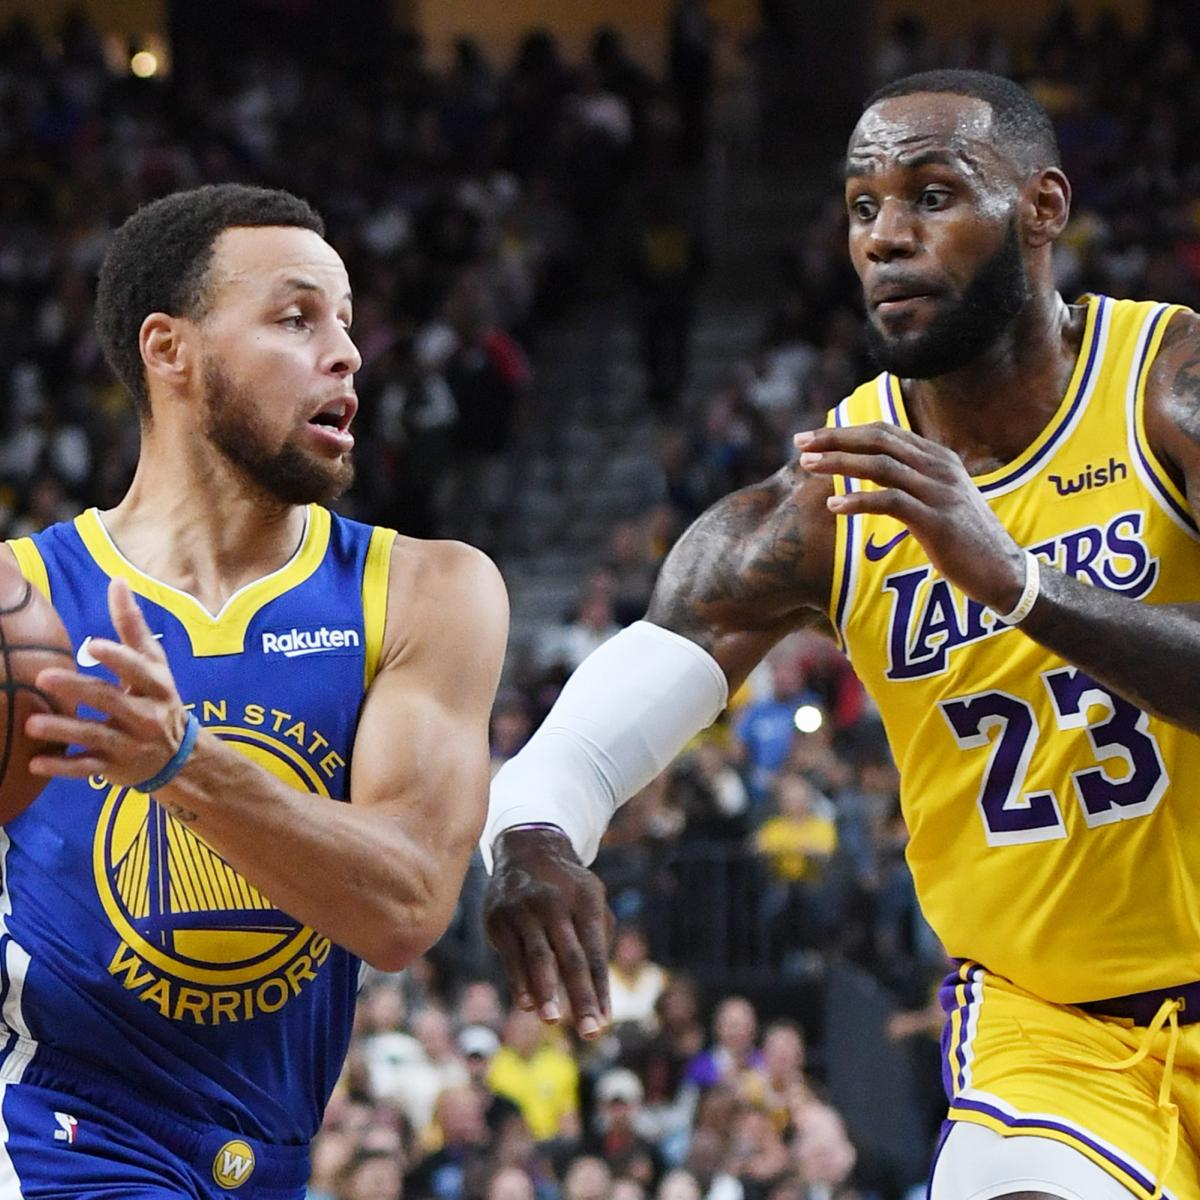 Golden State Warriors Record Without Steph Curry: Video: Steph Curry, NBA Finals Players Sign 'Wish You Were